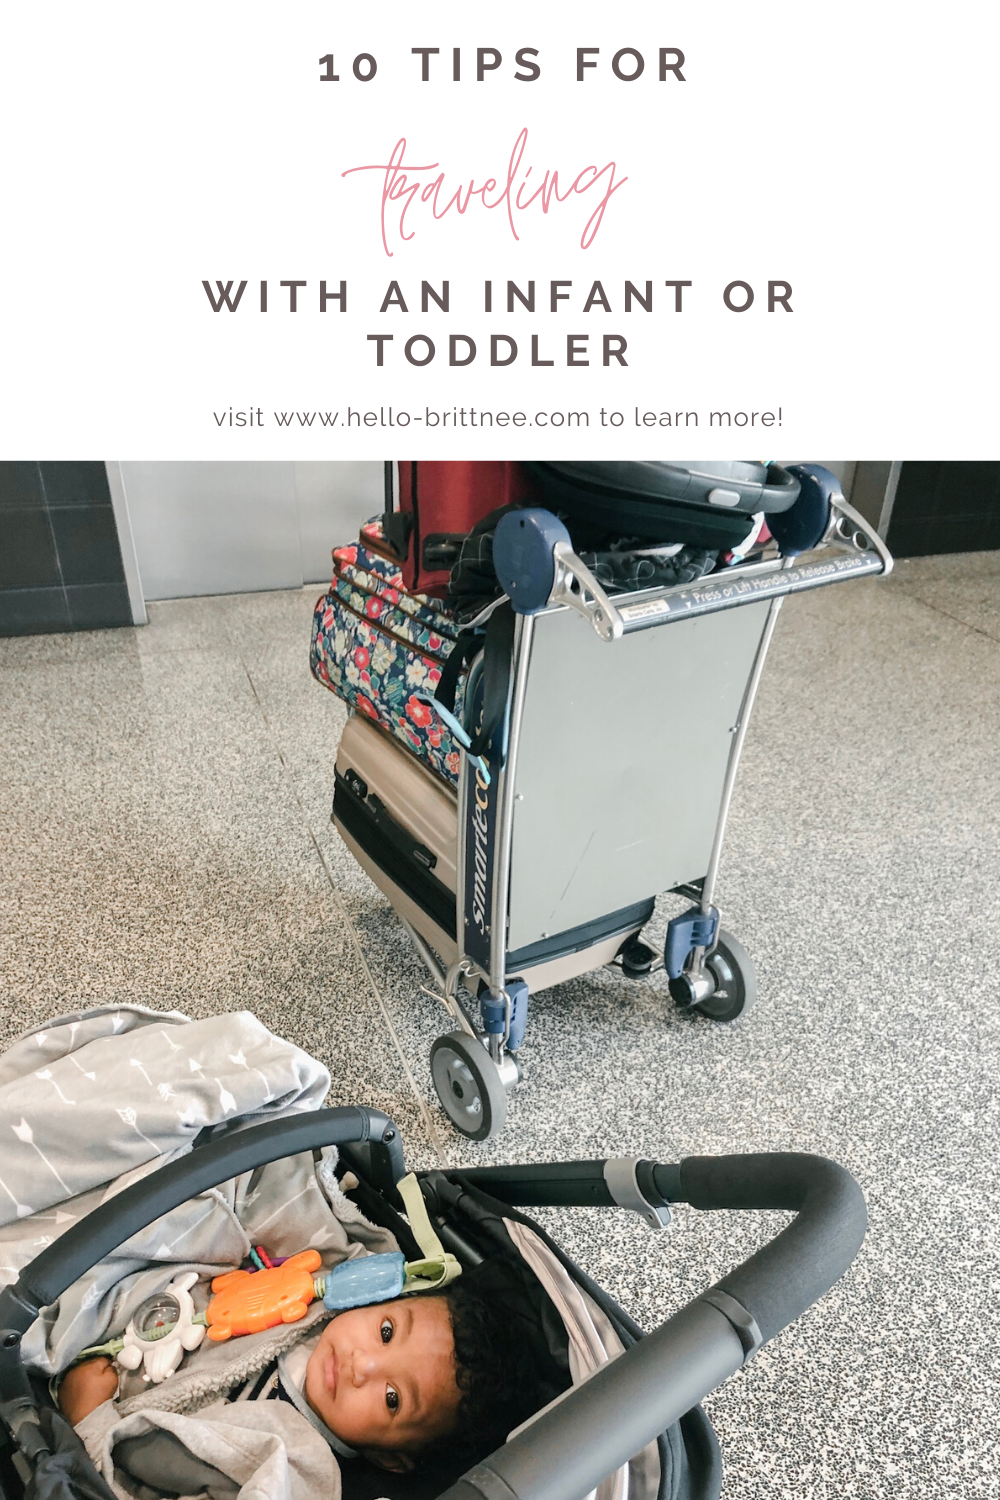 hello-brittnee-travel-tips-baby-infant